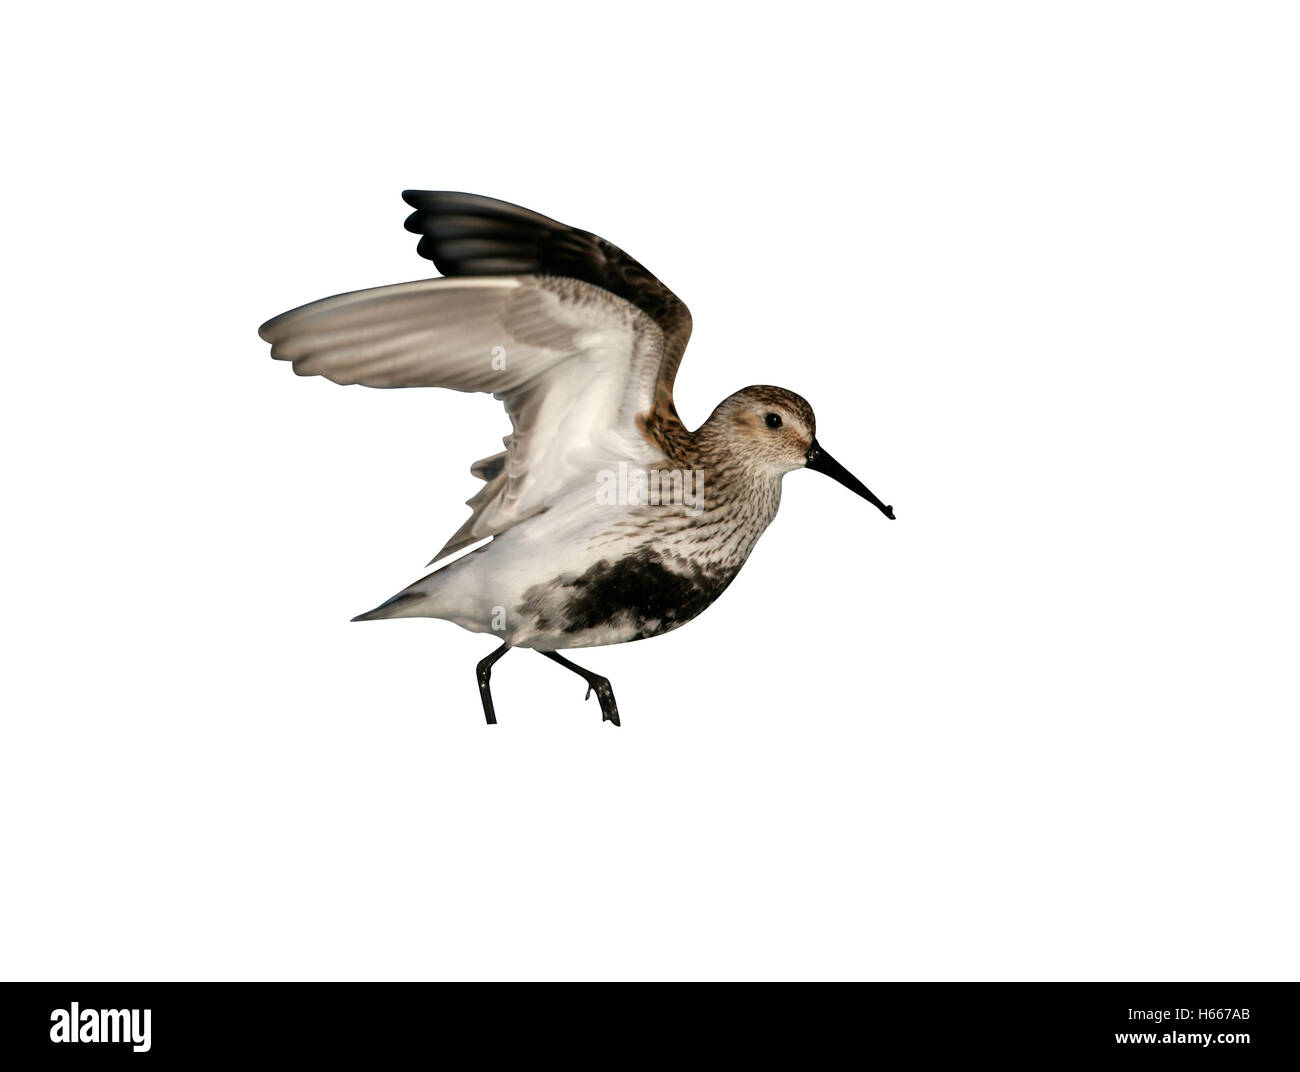 Dunlin, Calidris alpina, single bird in water, South Uist, Hebrides, Scotland - Stock Image